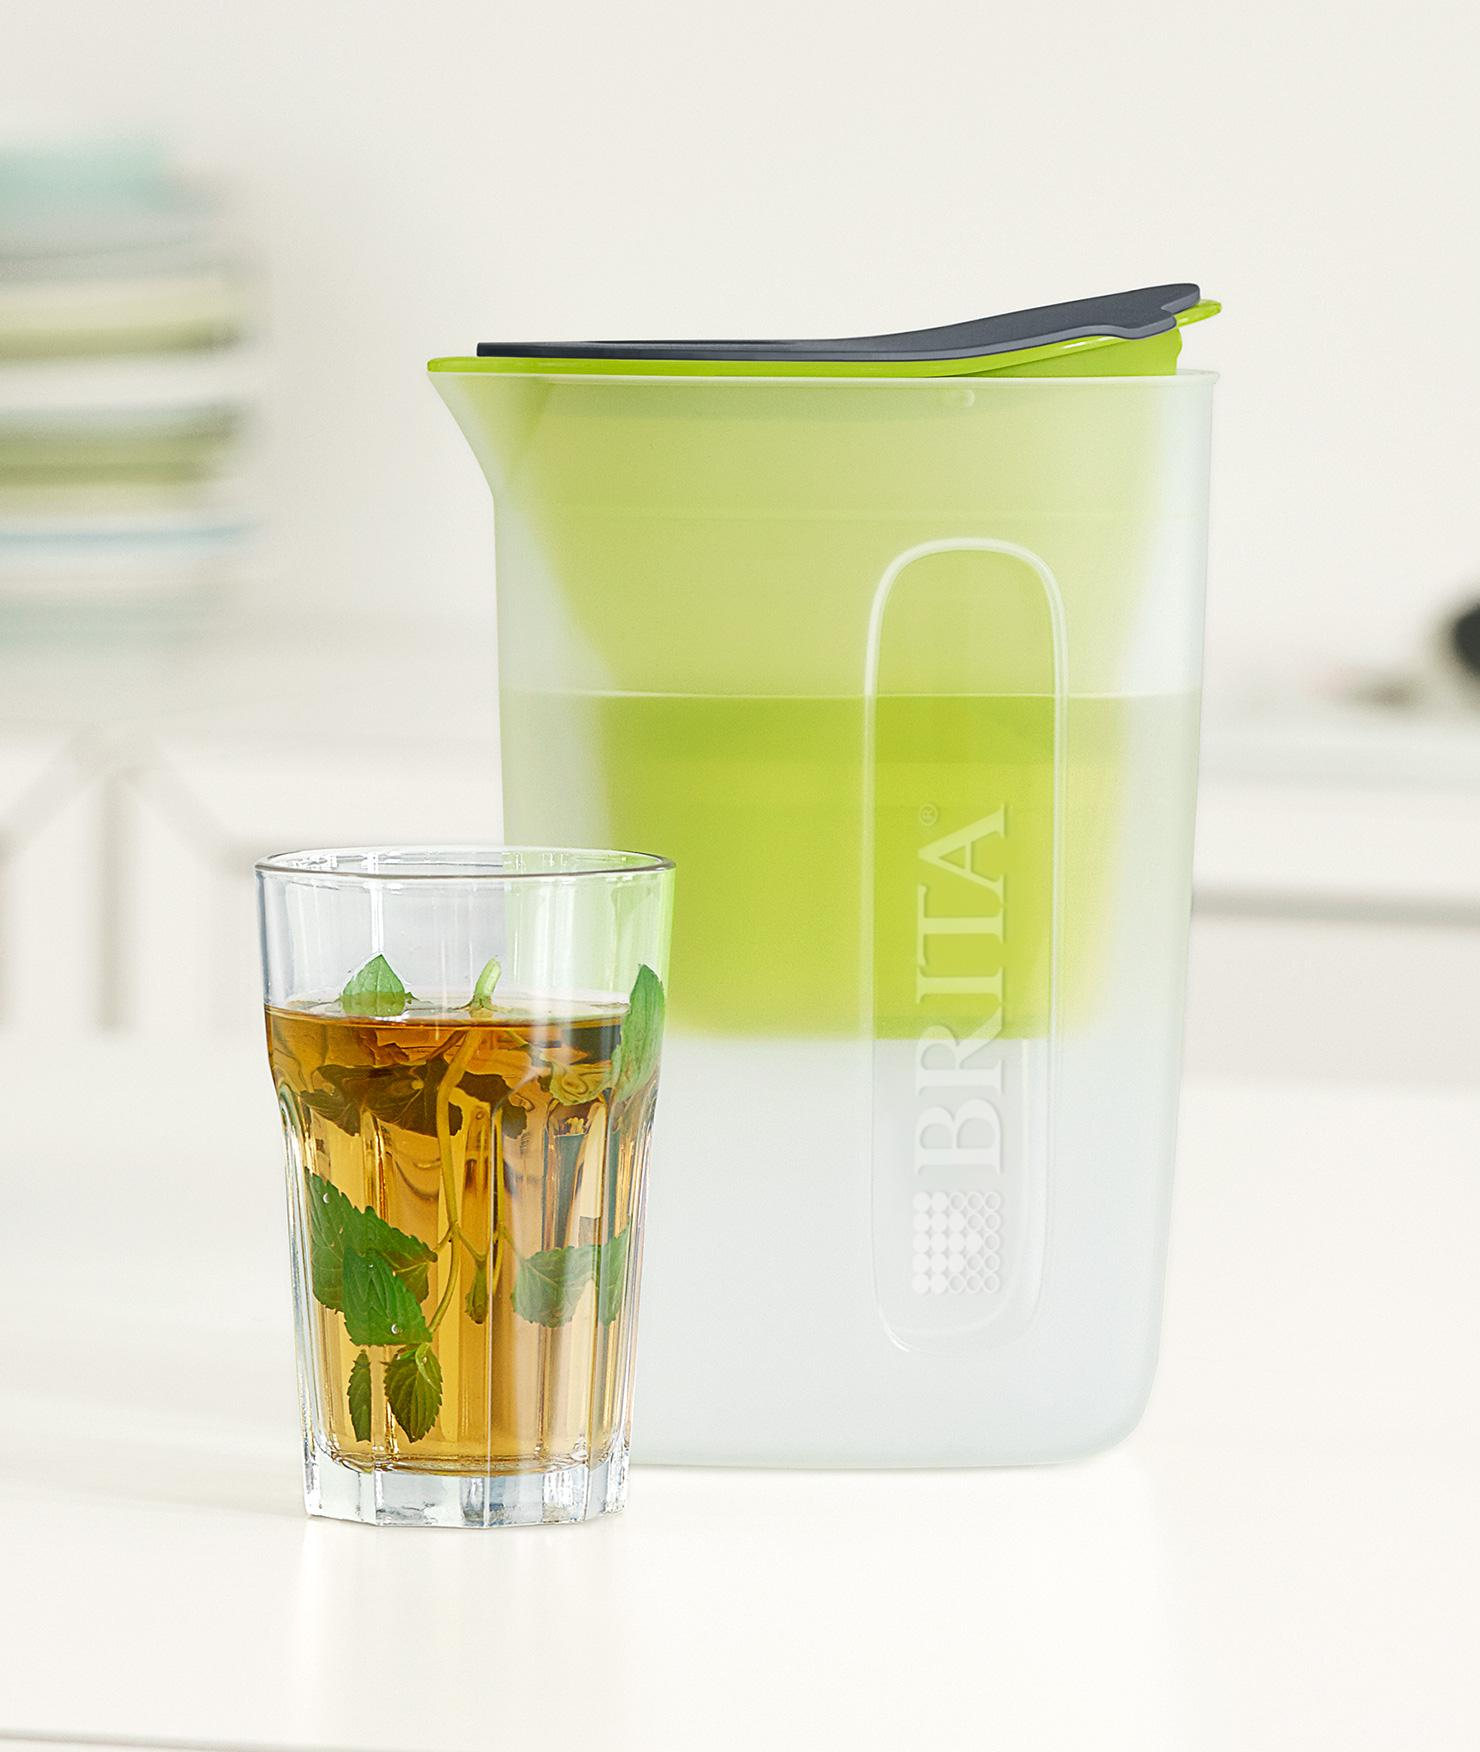 BRITA fill&enjoy Fun lime kitchen glass tea